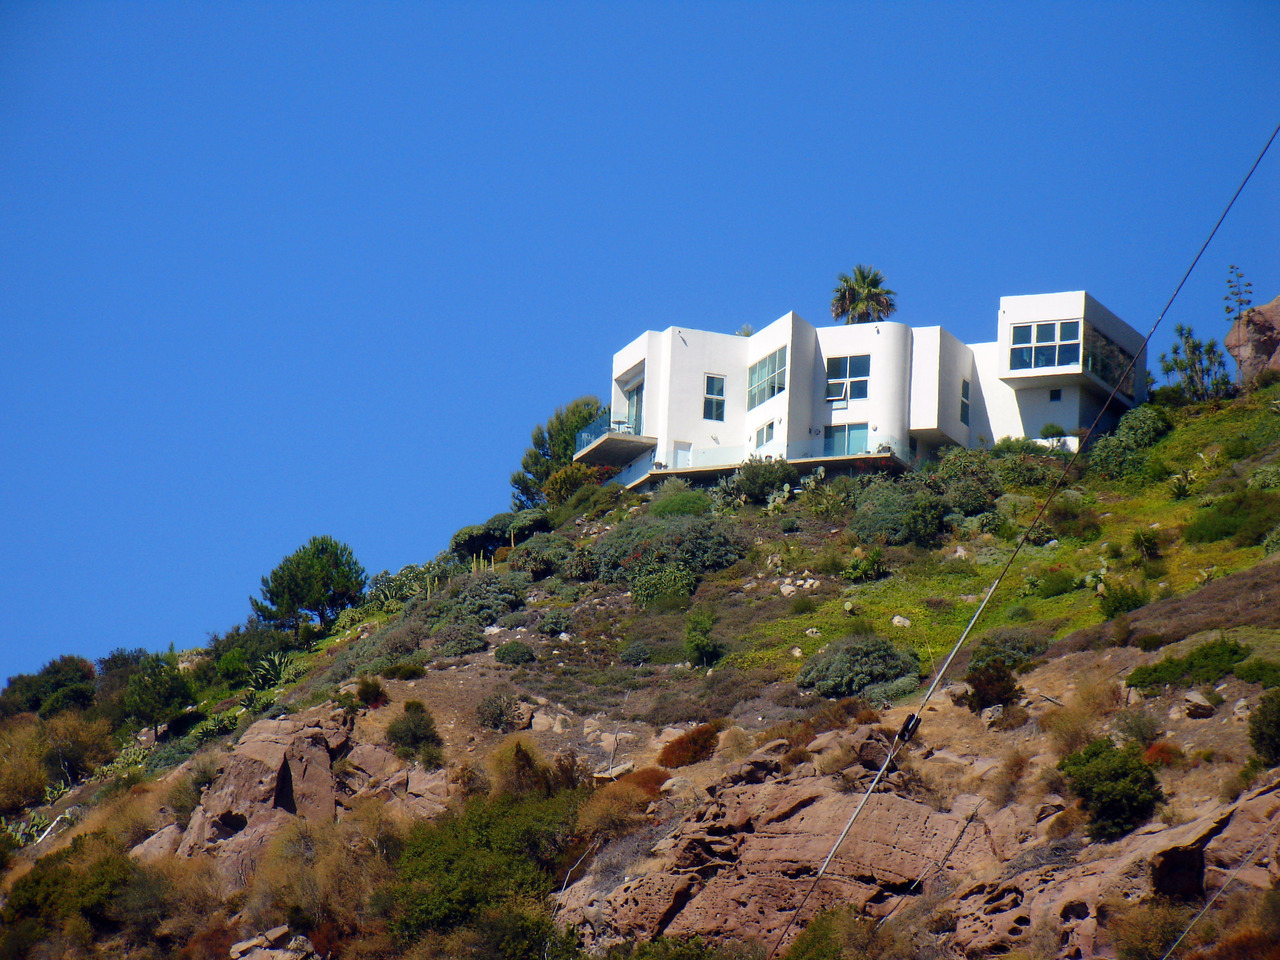 Why yes, I have seen the big white house on the hill in Malibu. Even took a picture.